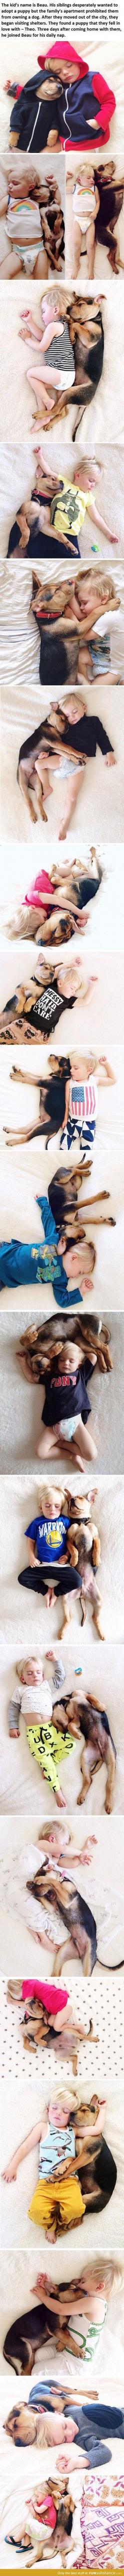 this is adorable :): Cuteness Overload, Dogs, Sweet, Pet, Puppys, Baby, Friend, Kid